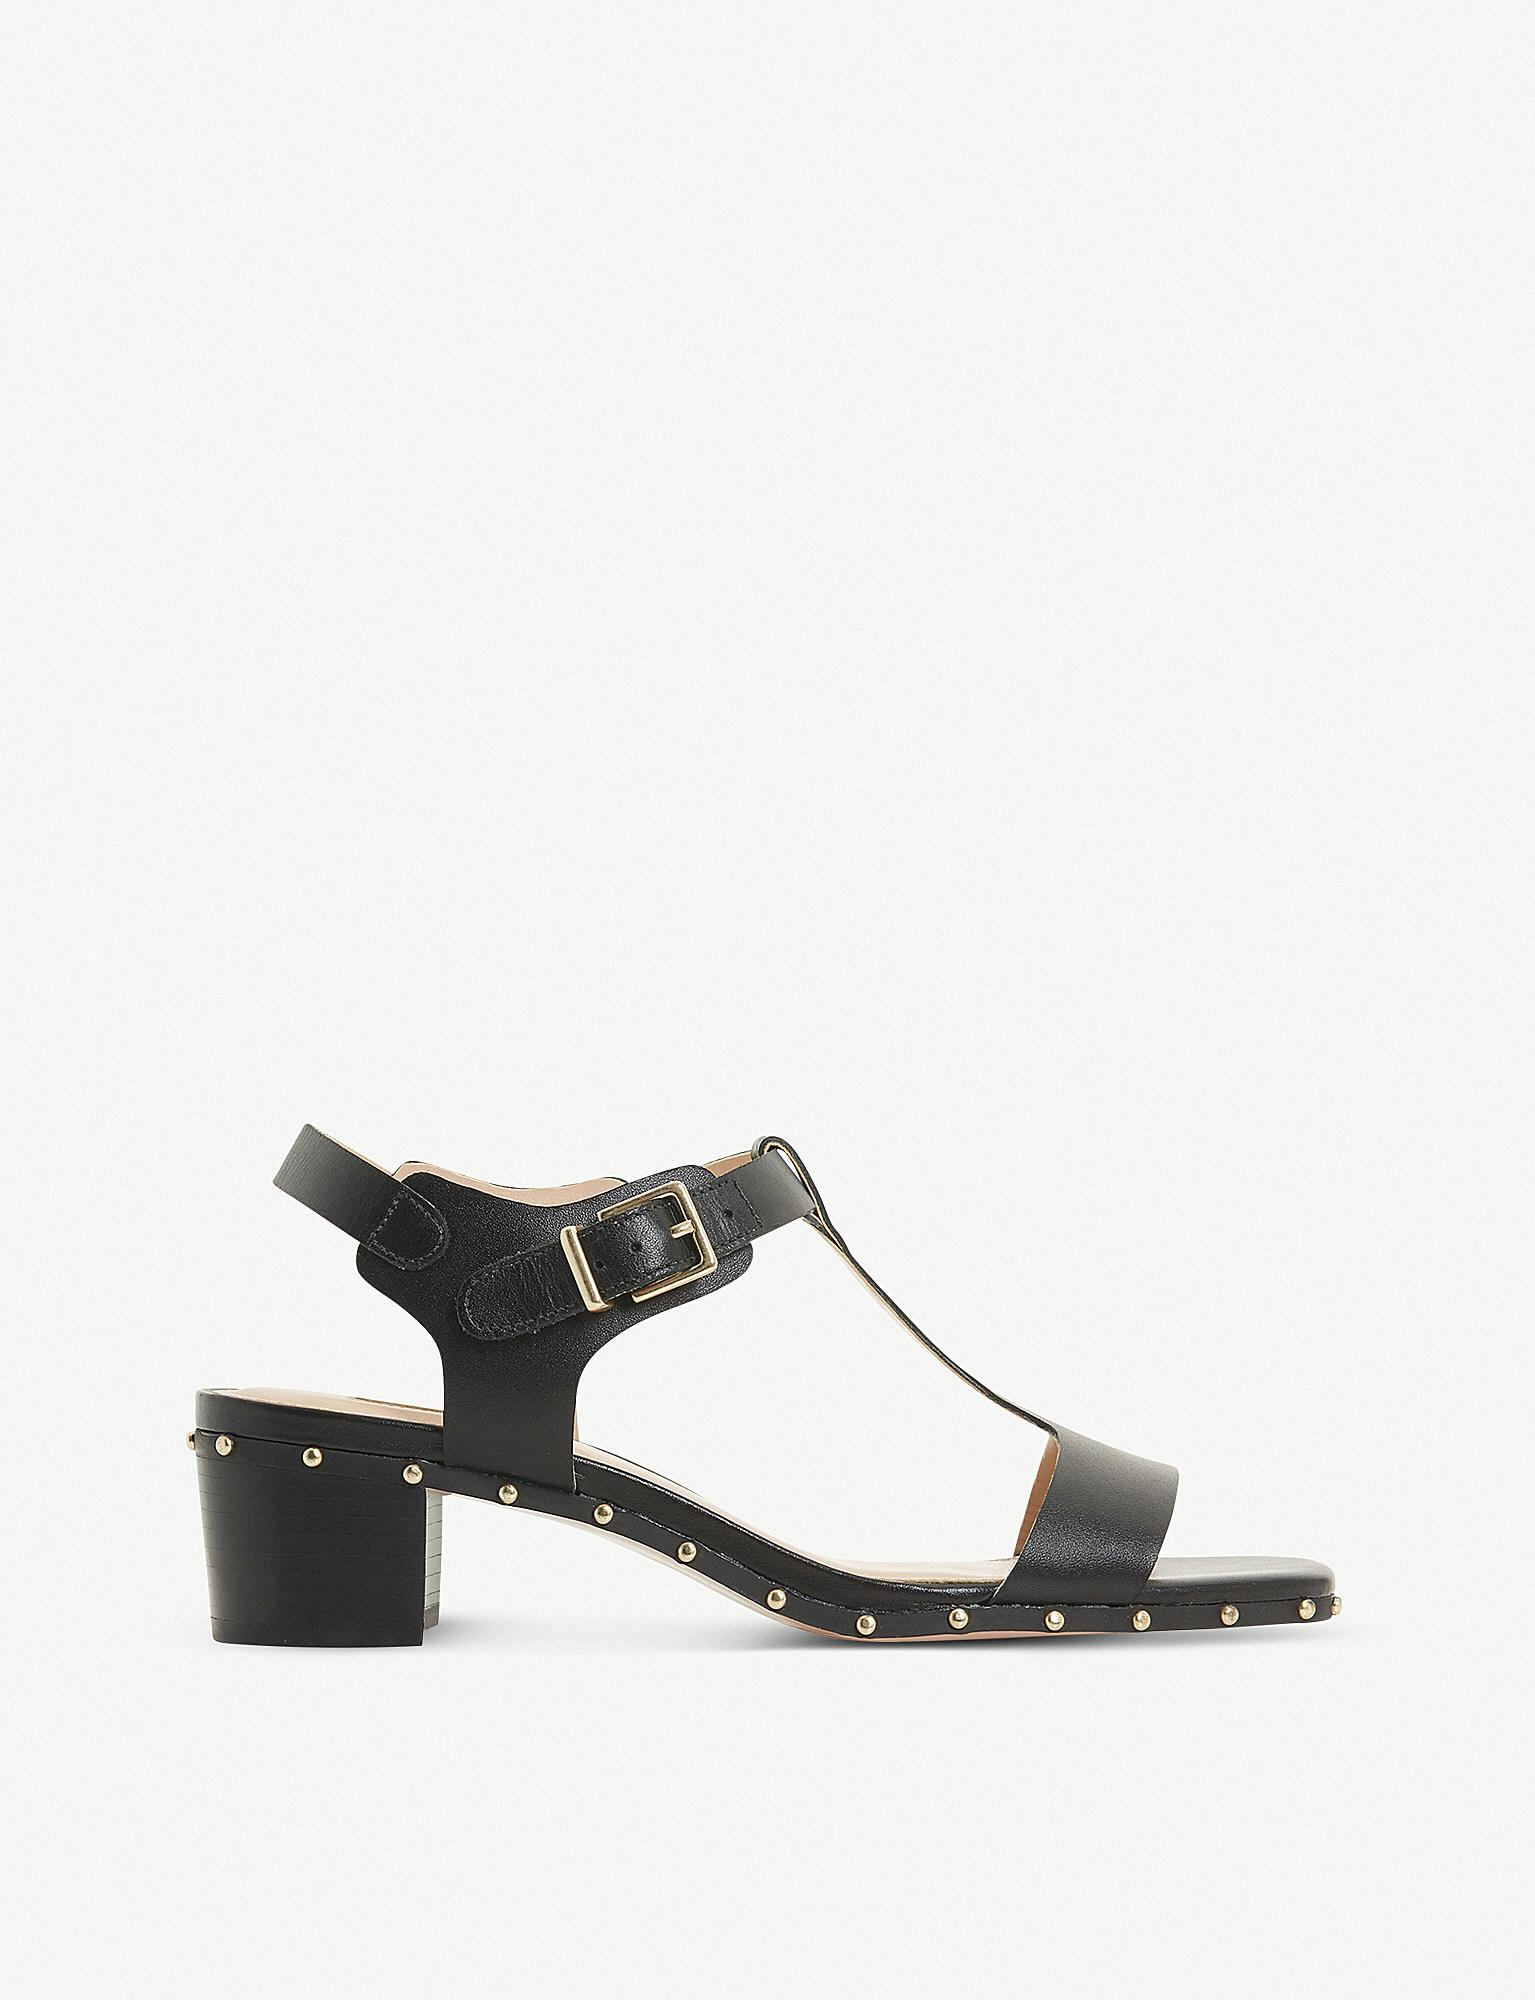 86fcfadb34ae Dune Isadora Studded T-bar Leather Sandals in Black - Lyst